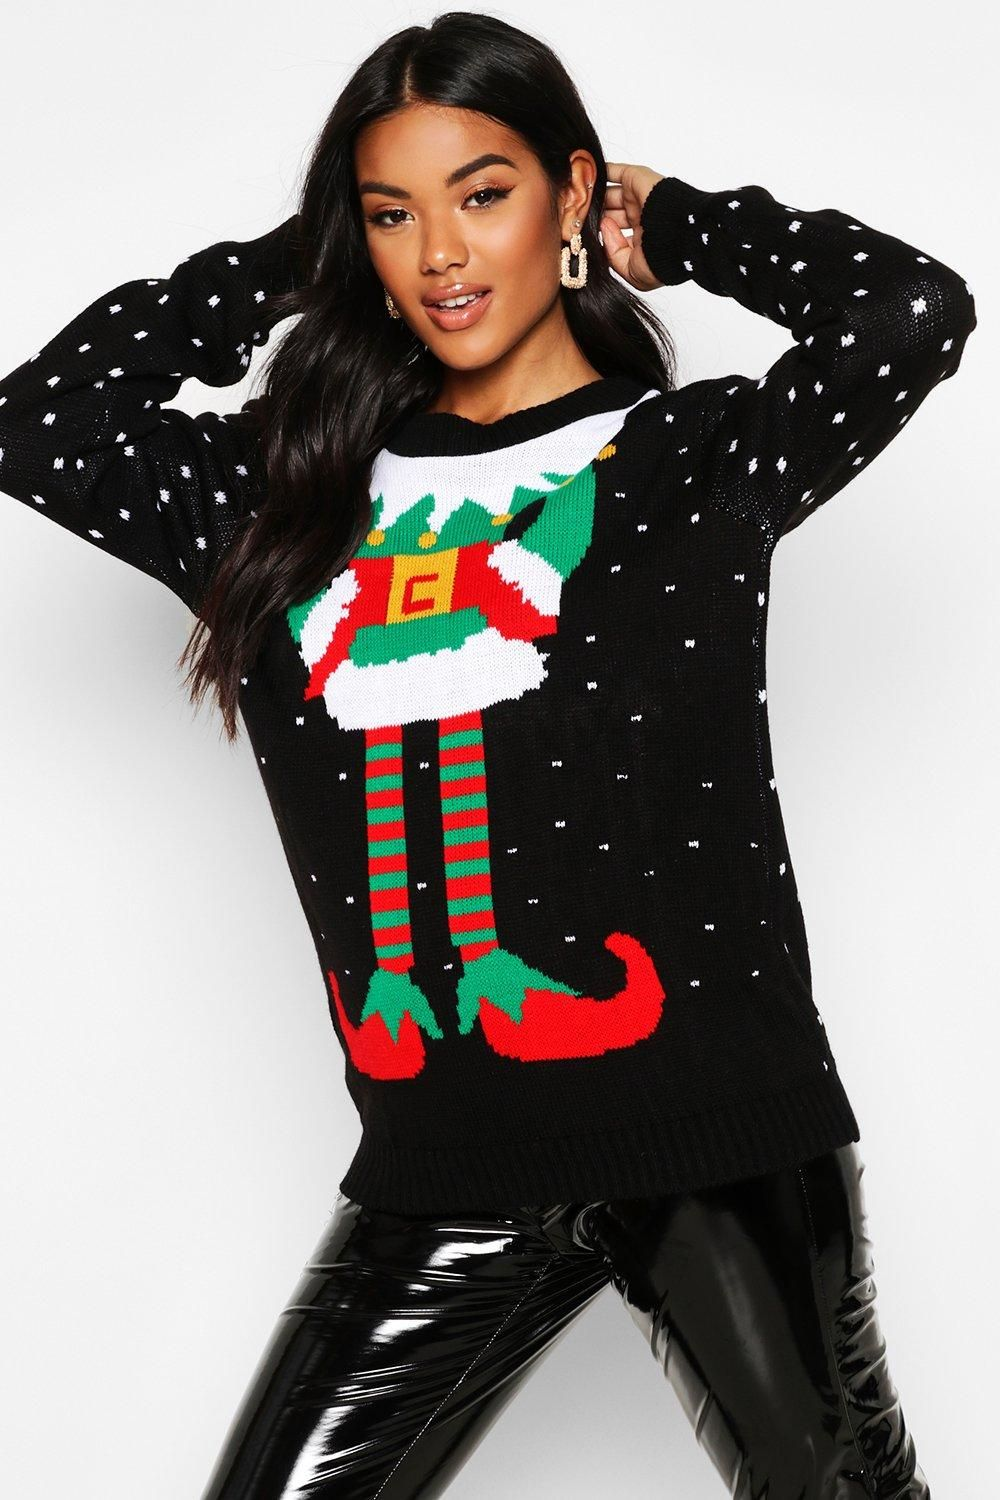 Elf Christmas Sweater boohoo in 2020 Christmas